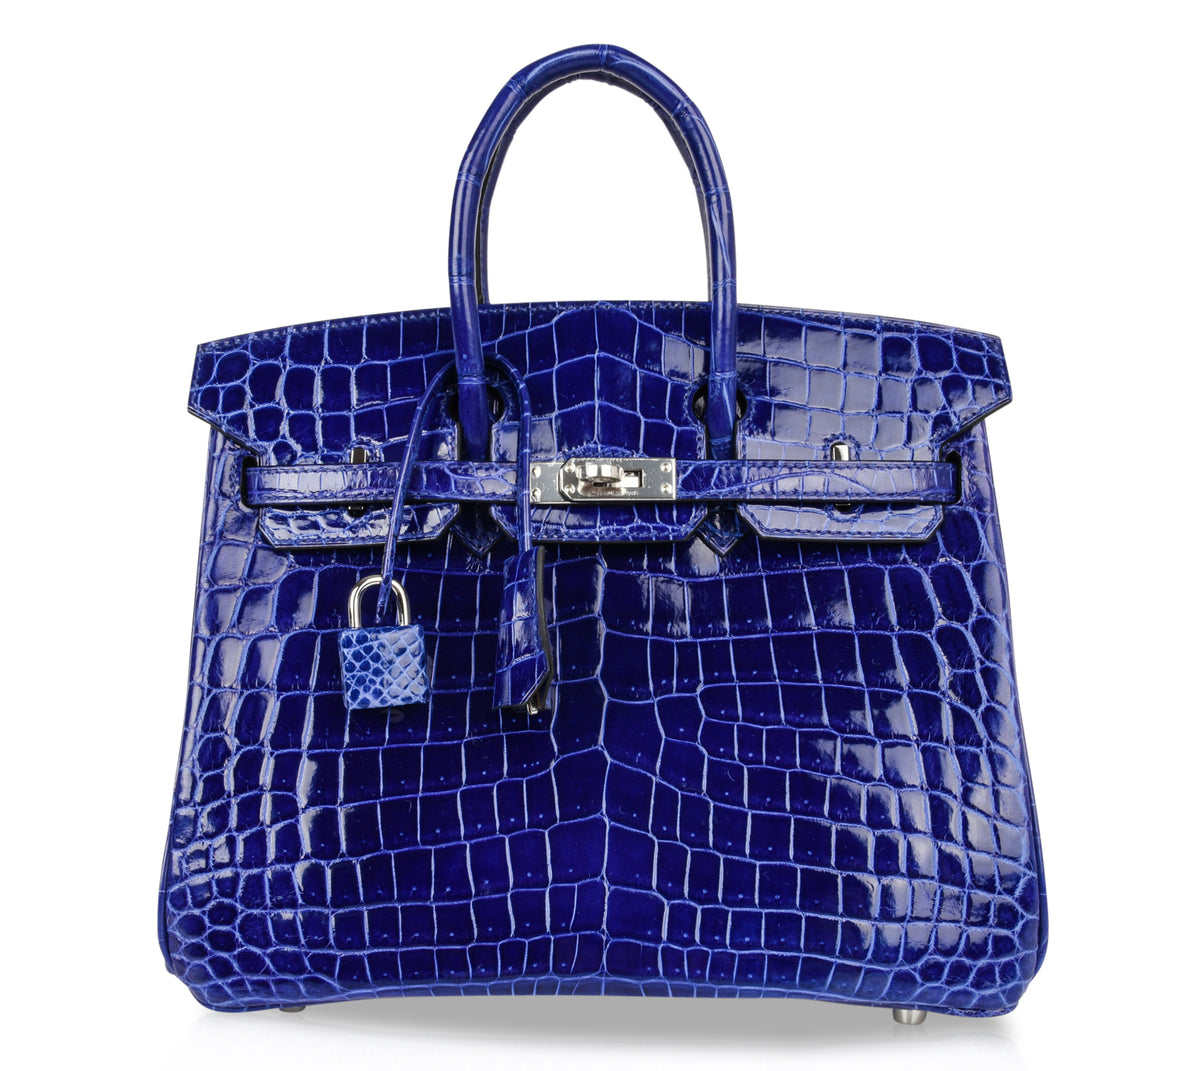 Mightychic Presents Five Coveted Hermes Birkin 25cm Bags